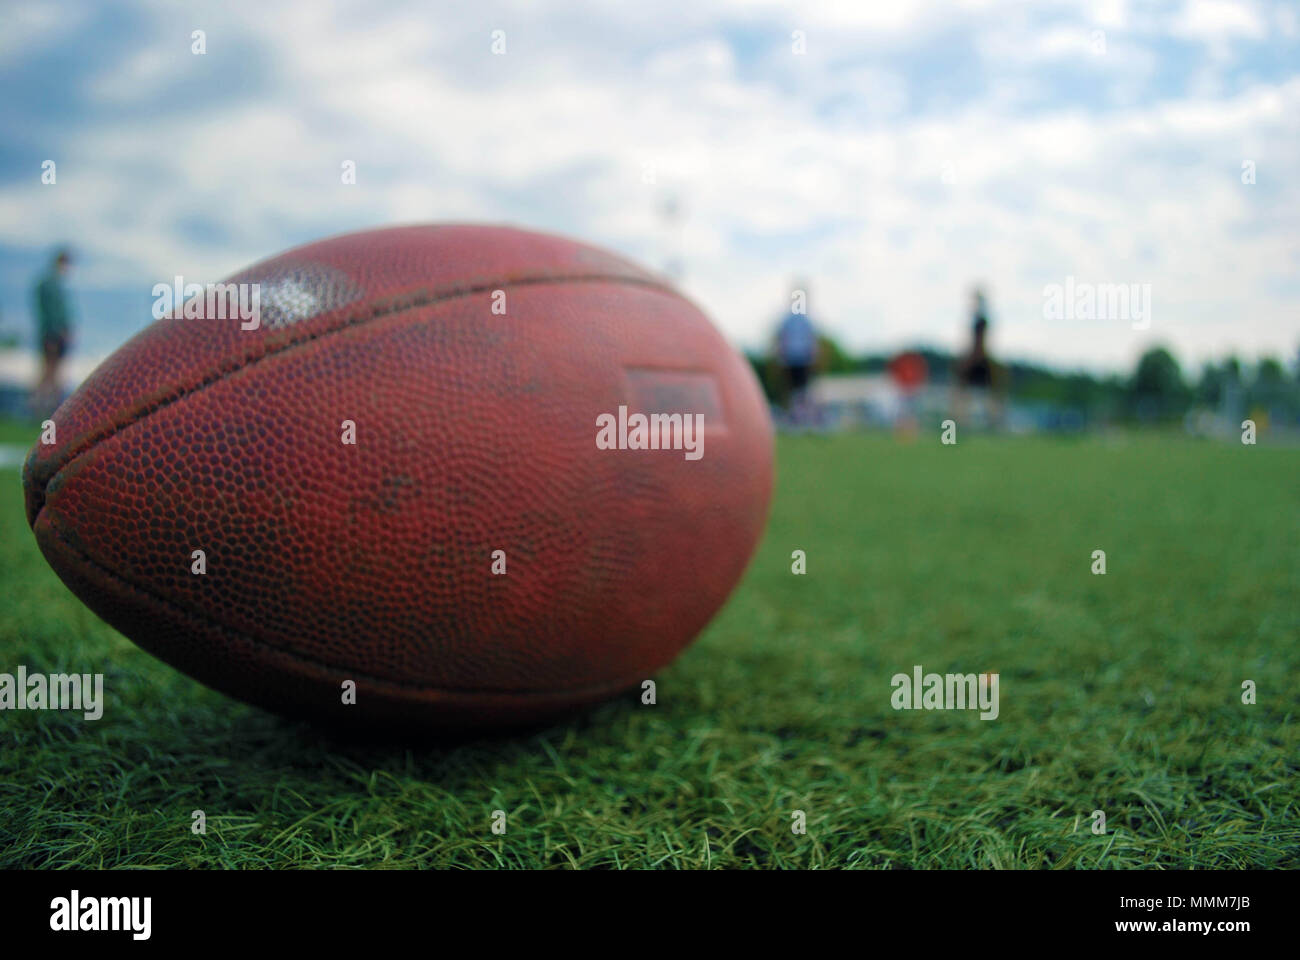 American football is a way of life - Stock Image